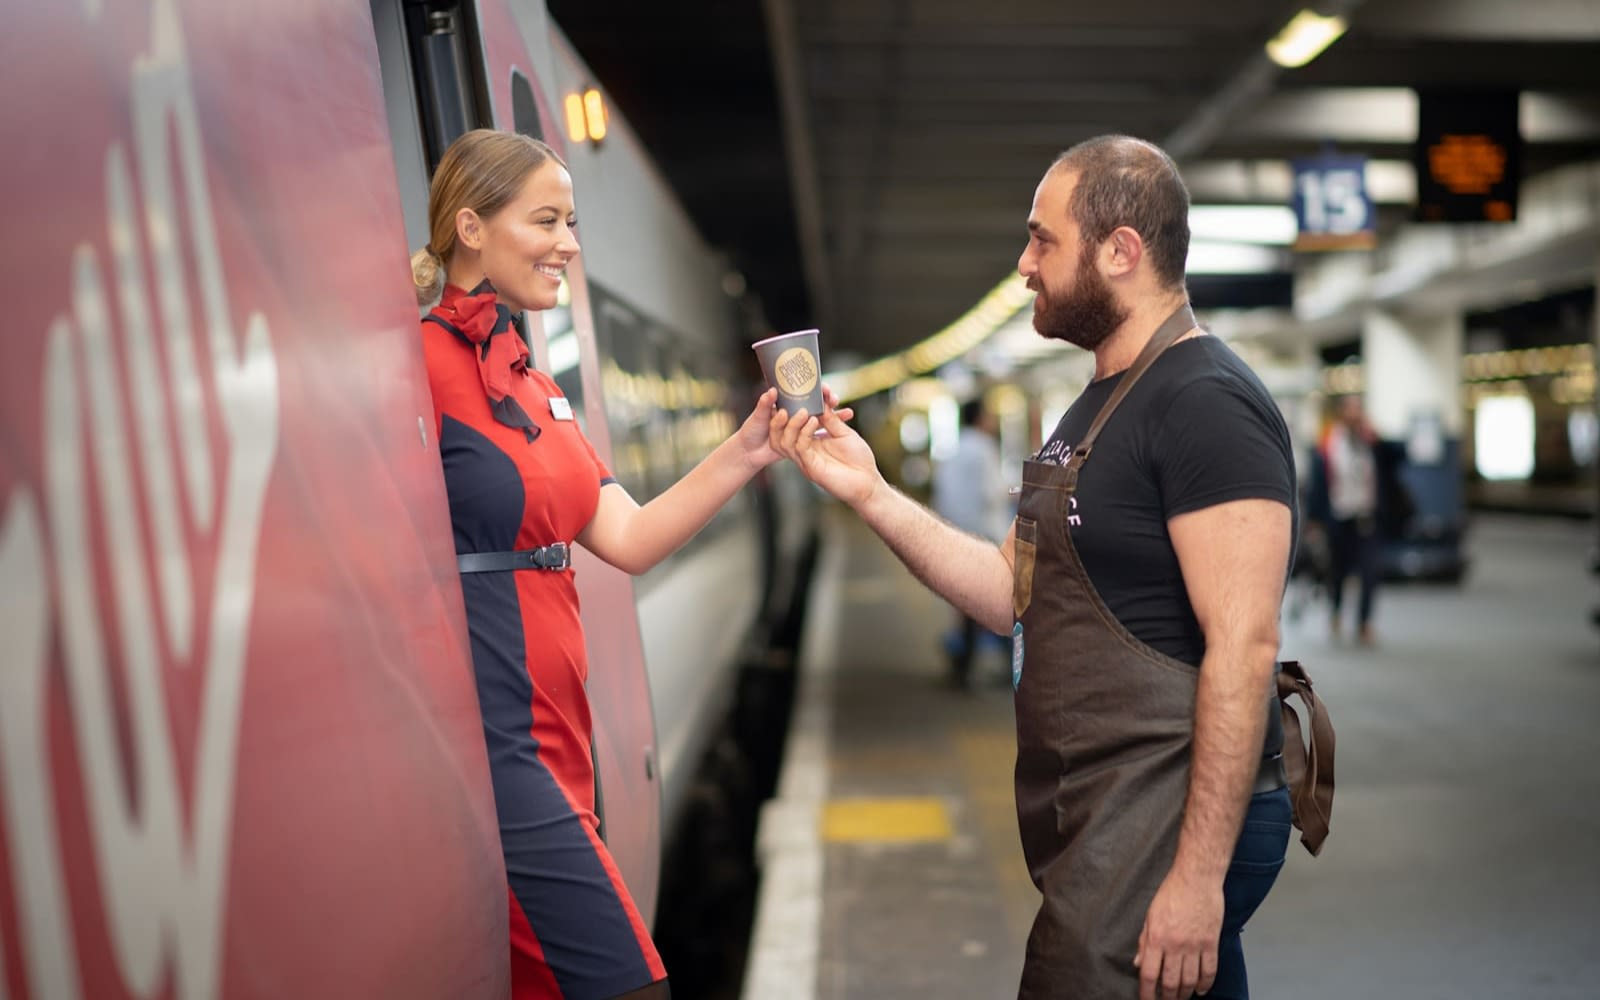 A Virgin Trains employee receives a cup of coffee from a Change Please barista